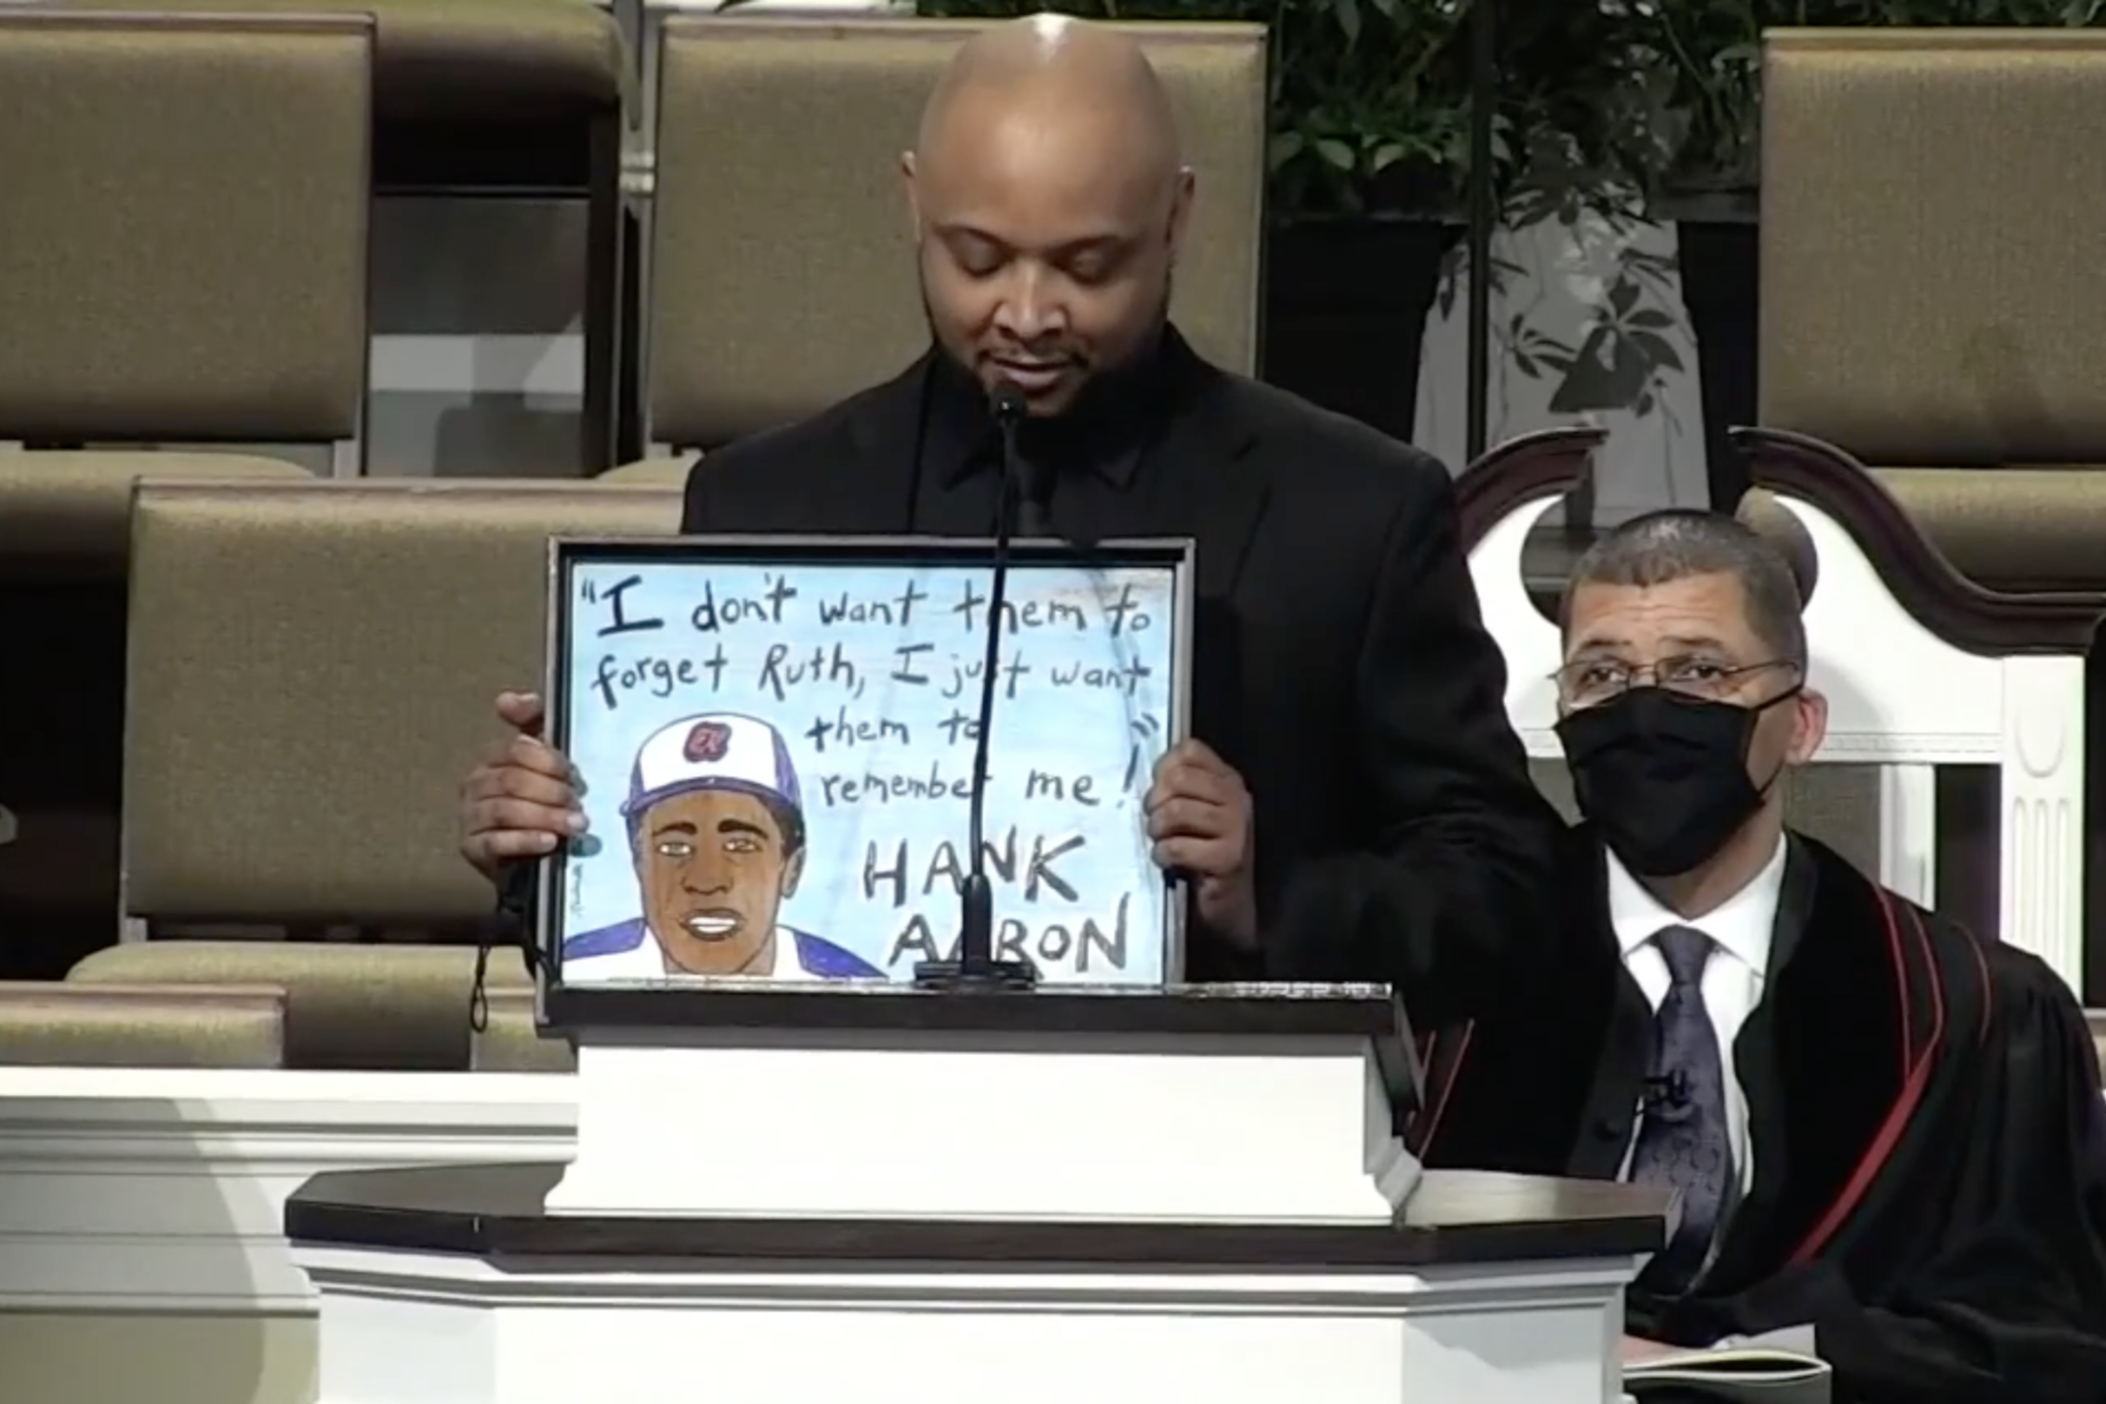 Raynal Aaron, Hank Aaron's grandson, shared memorable quotes from his grandfather at Wednesday's funeral service.